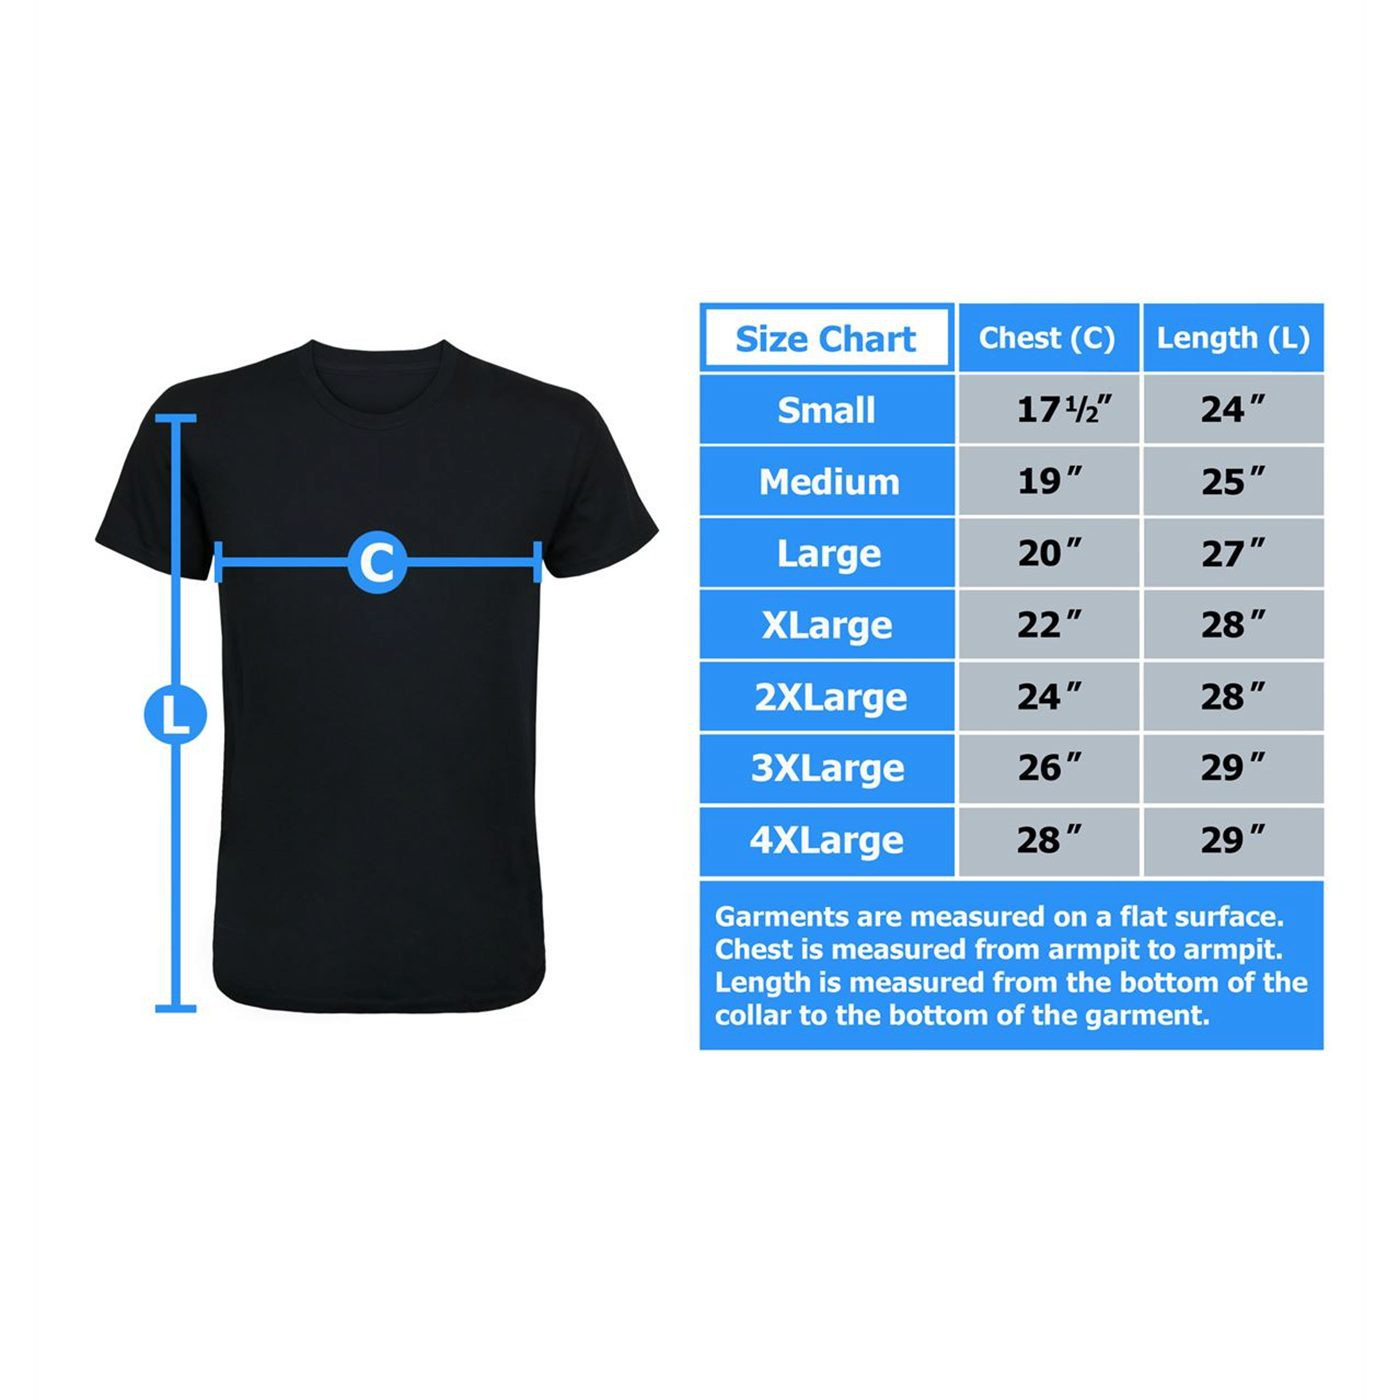 Thor Power Company T-Shirt